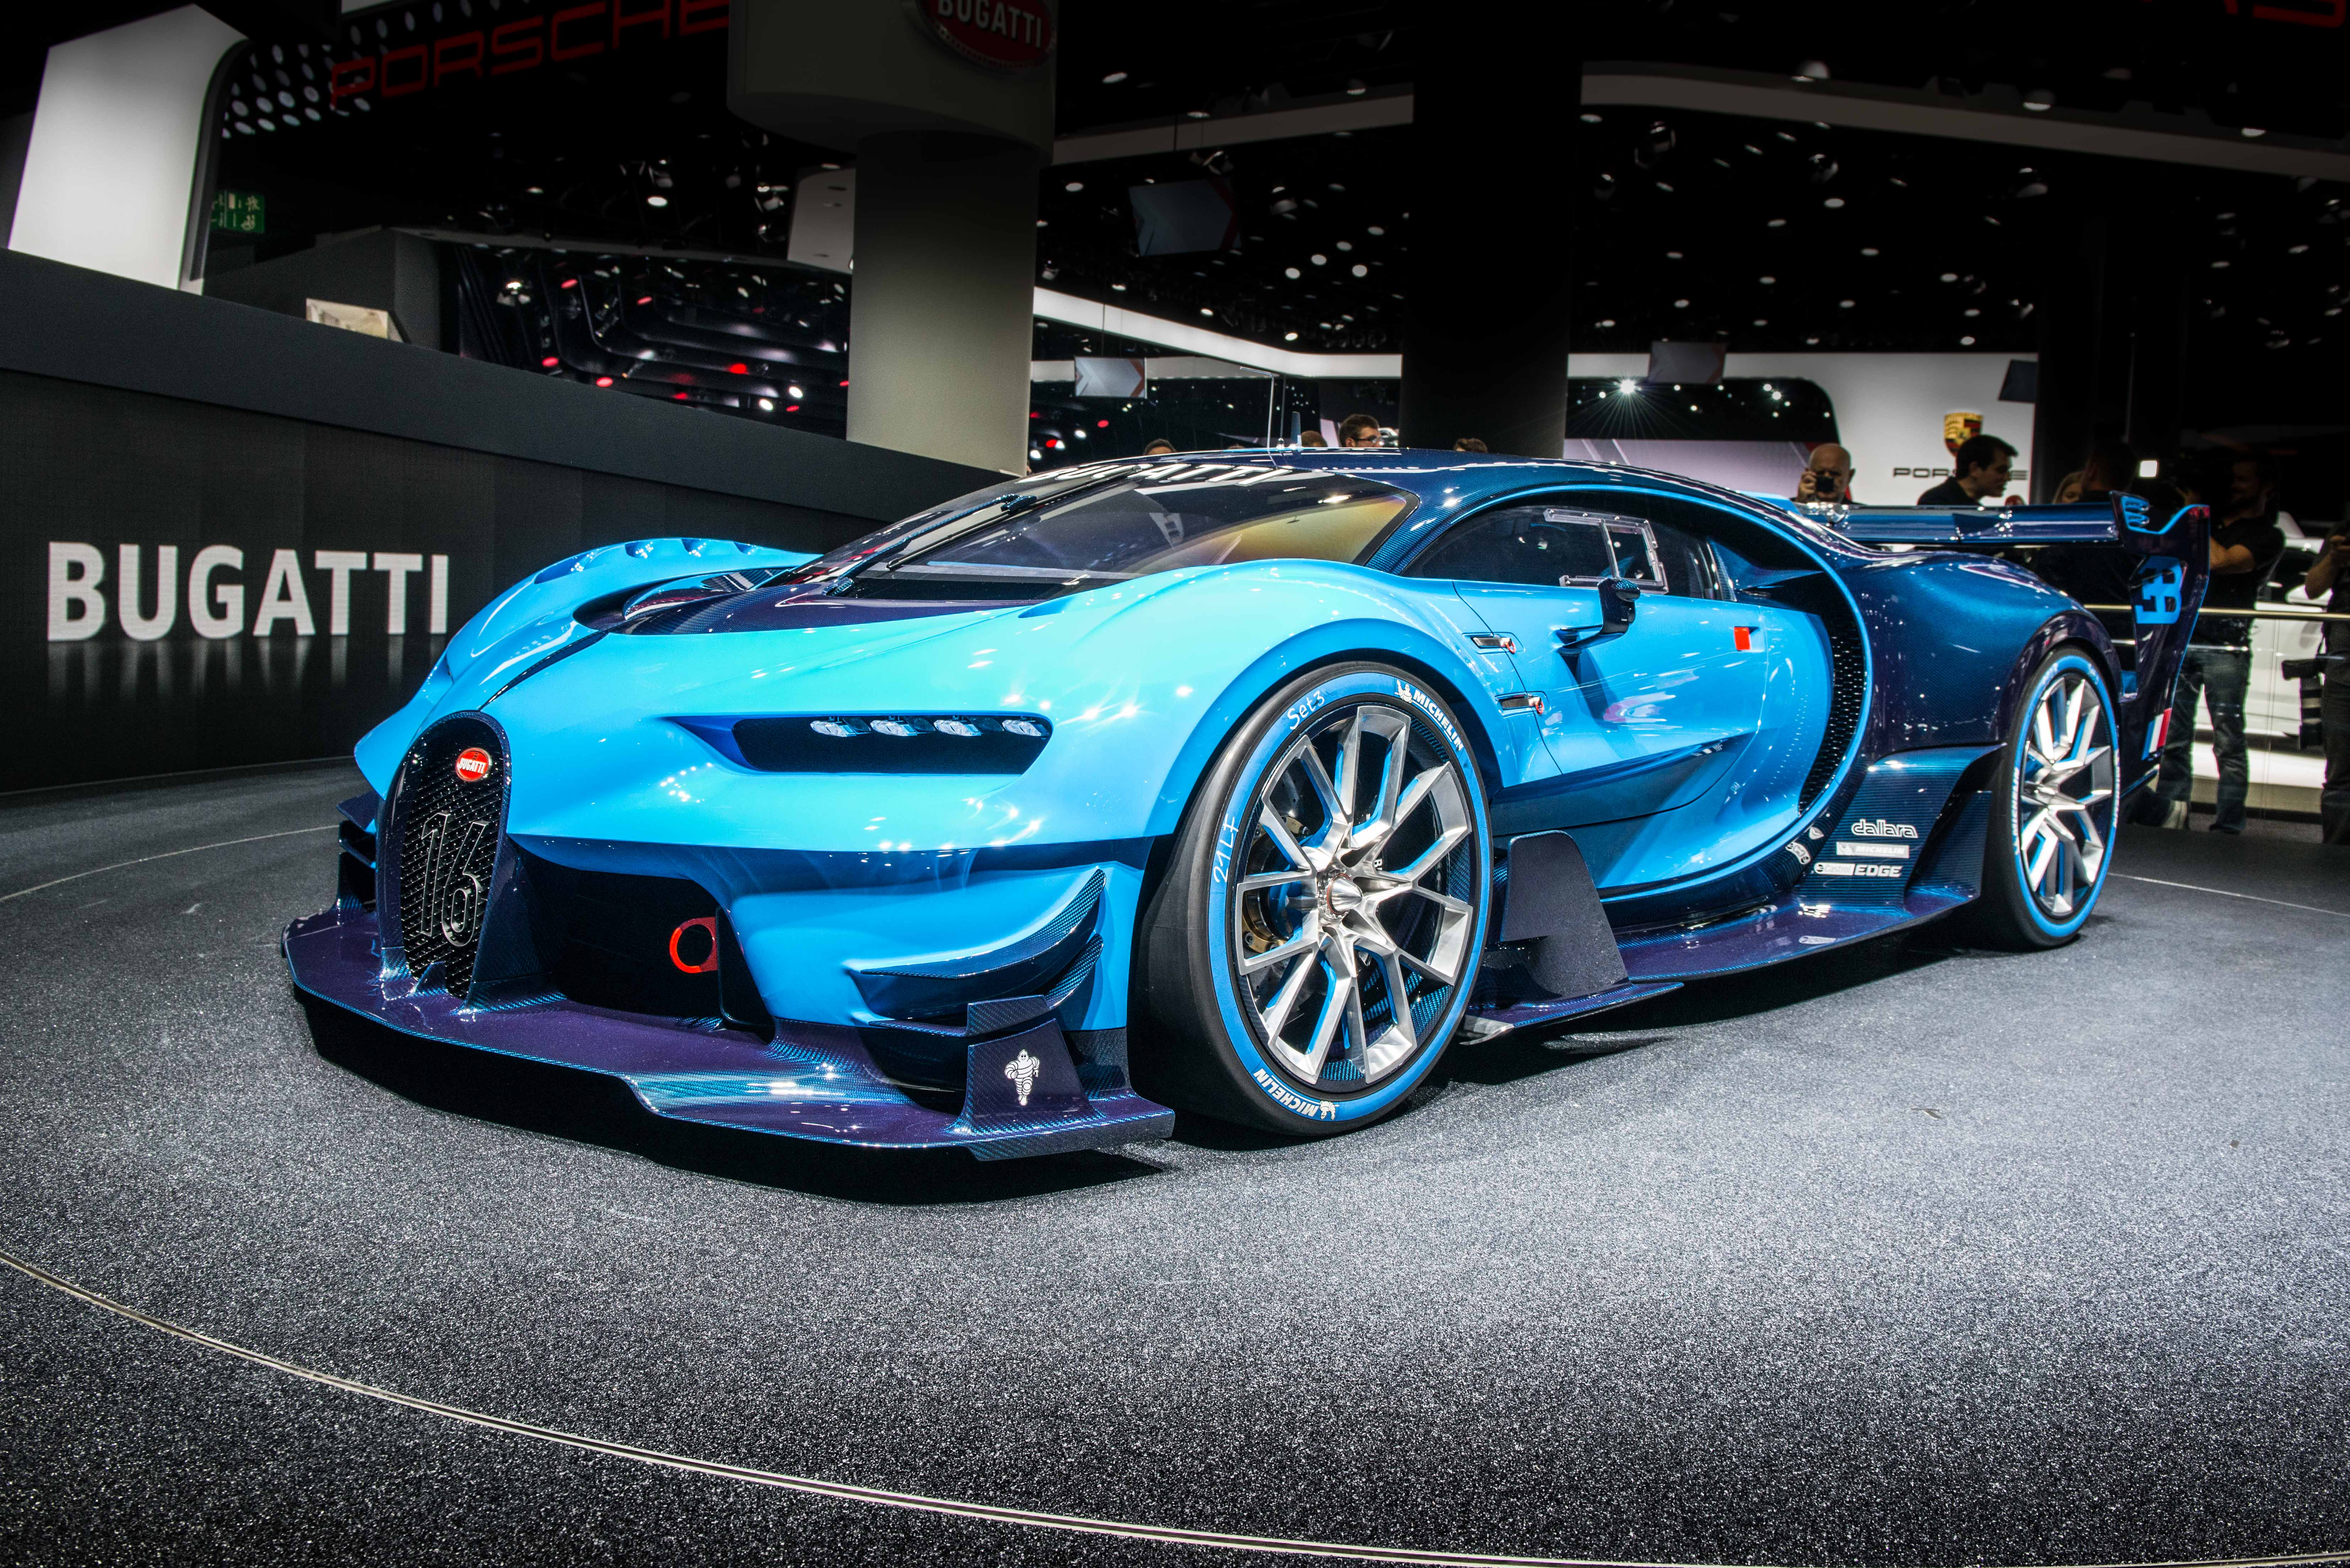 This is the Bugatti Vision Gran Turismo, and it'll do 250mph+ | Top  Gt Vision Bugatti on 2017 kia gt, 2017 nissan gt, 2017 shelby mustang gt, 2017 ford gt, 2017 bentley gt,